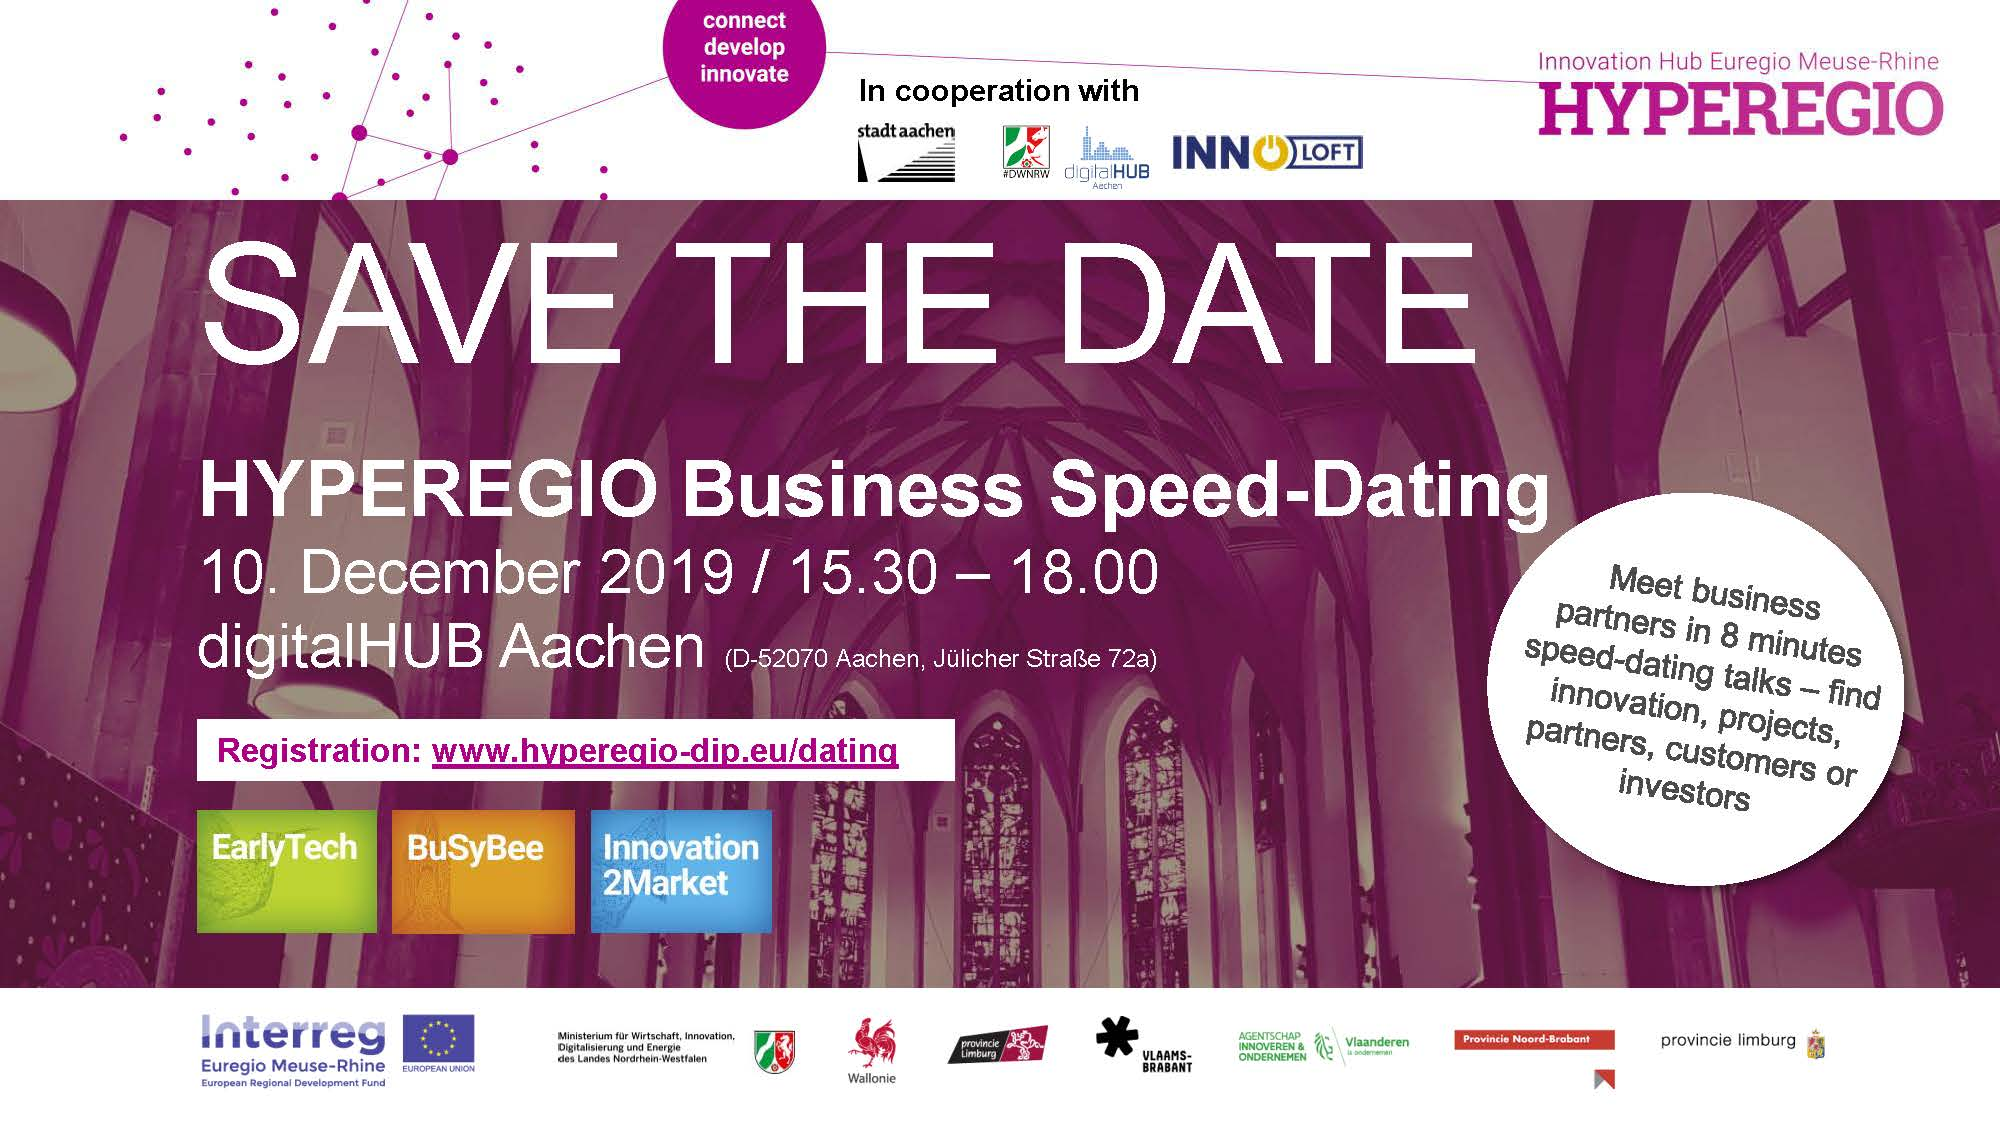 HYPEREGIO Business Speed-Dating